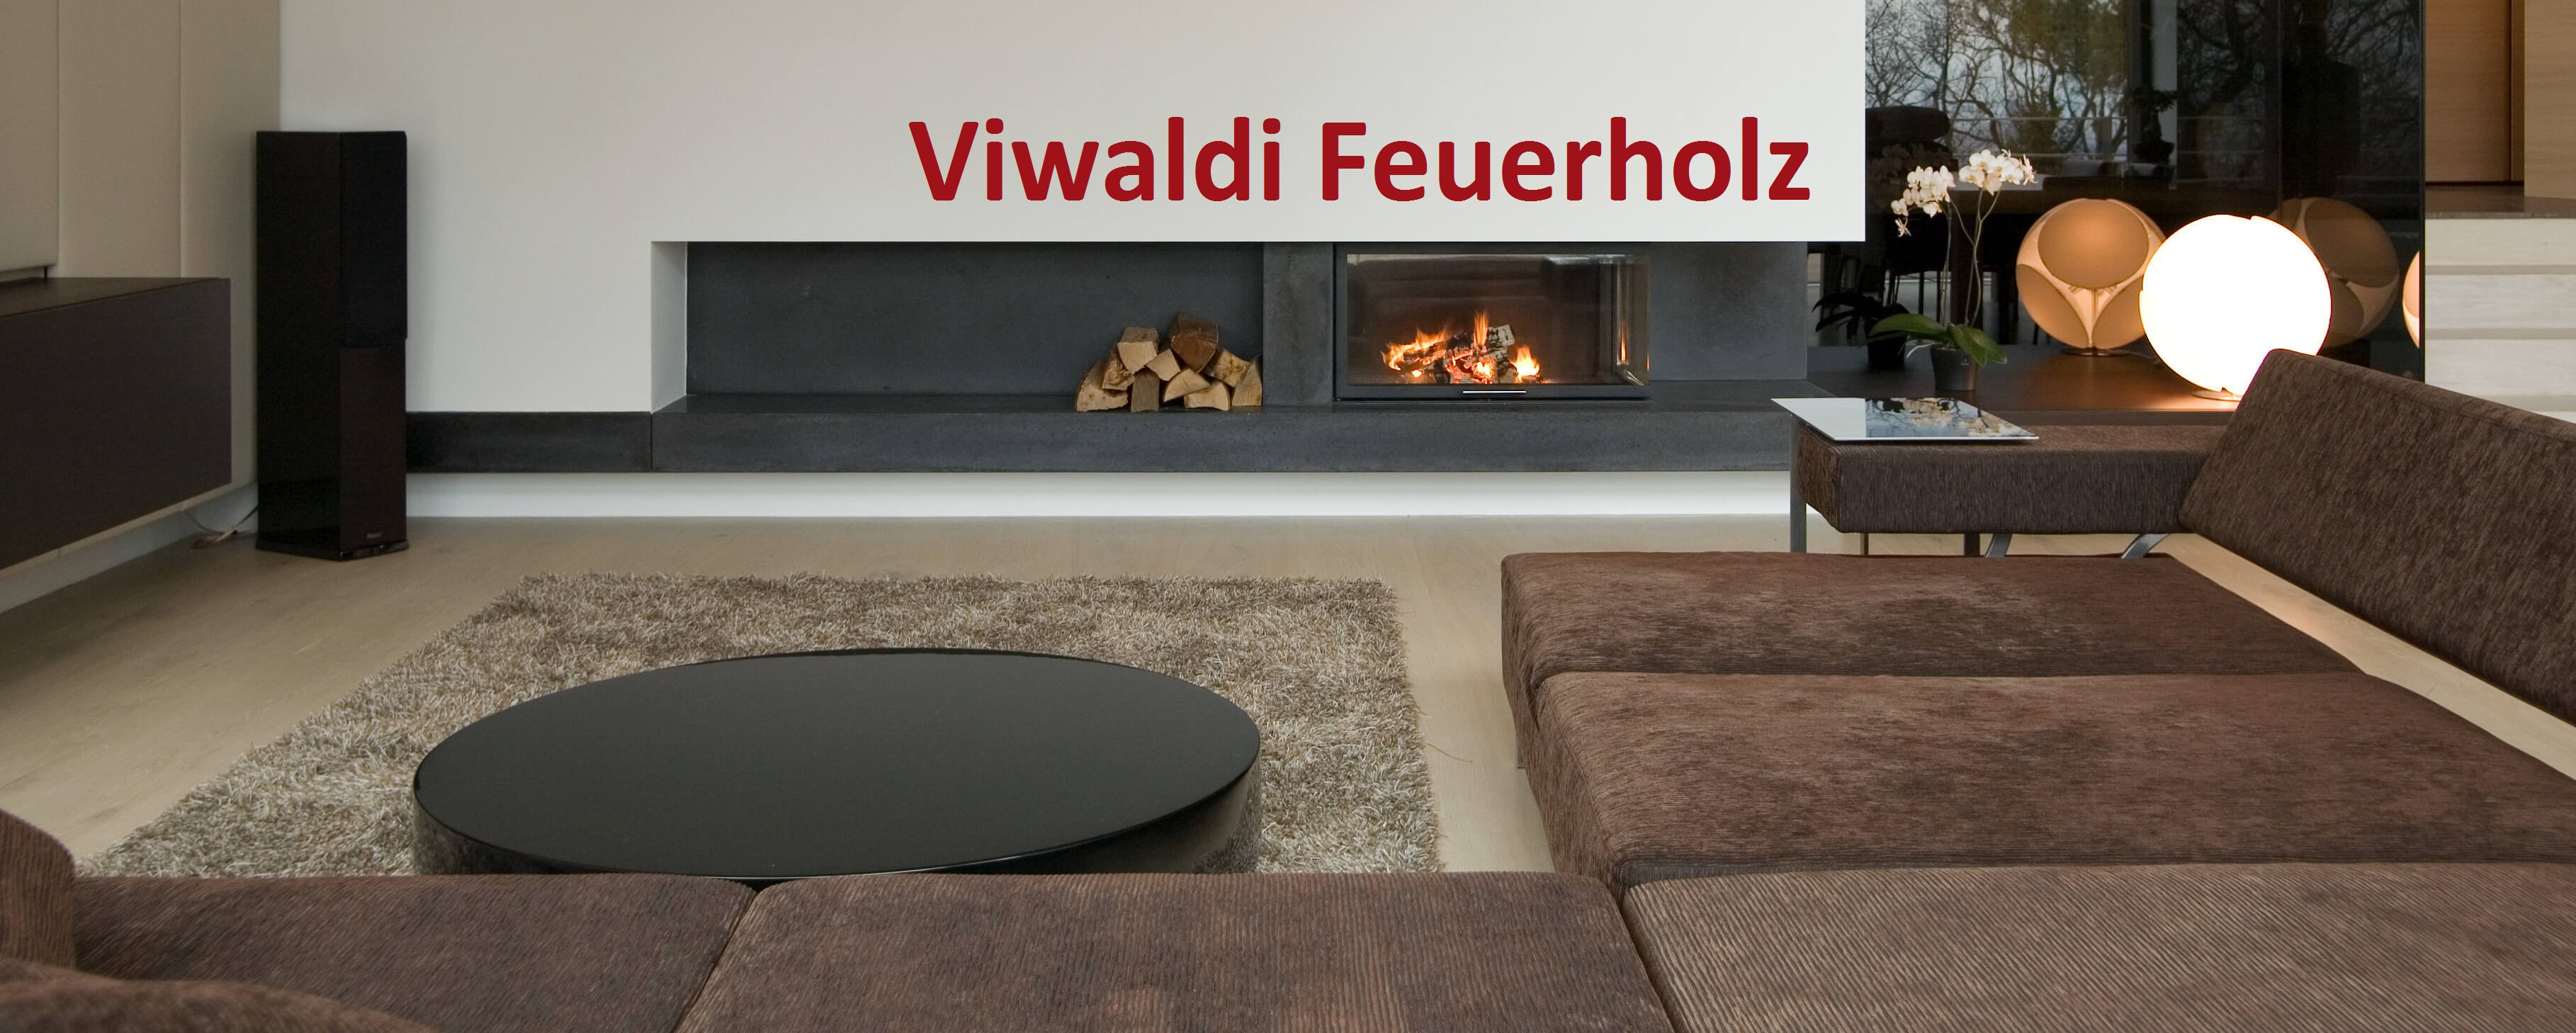 viwaldi feuerholz startseite. Black Bedroom Furniture Sets. Home Design Ideas